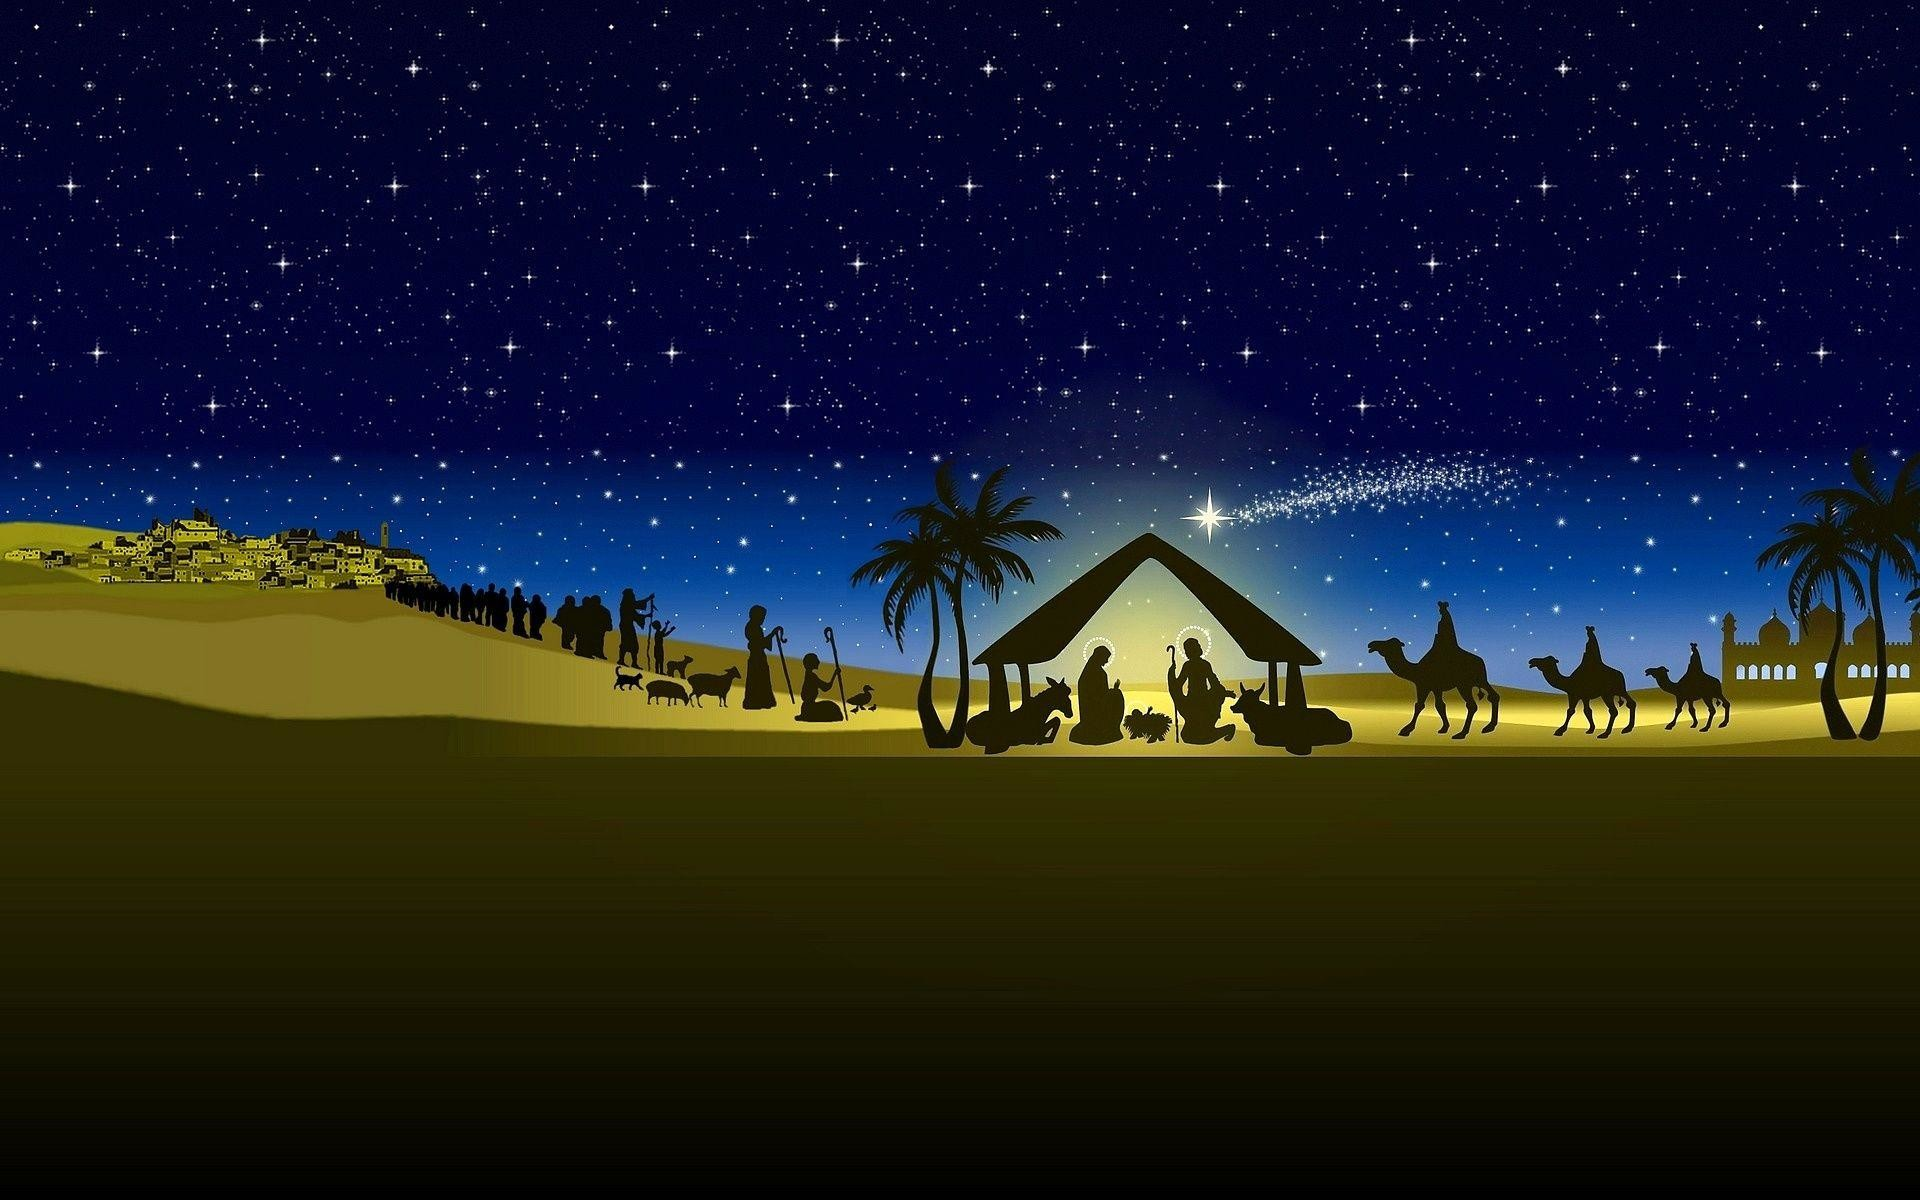 1920x1200 Wallpapers For Christmas Nativity Wallpaper Hd